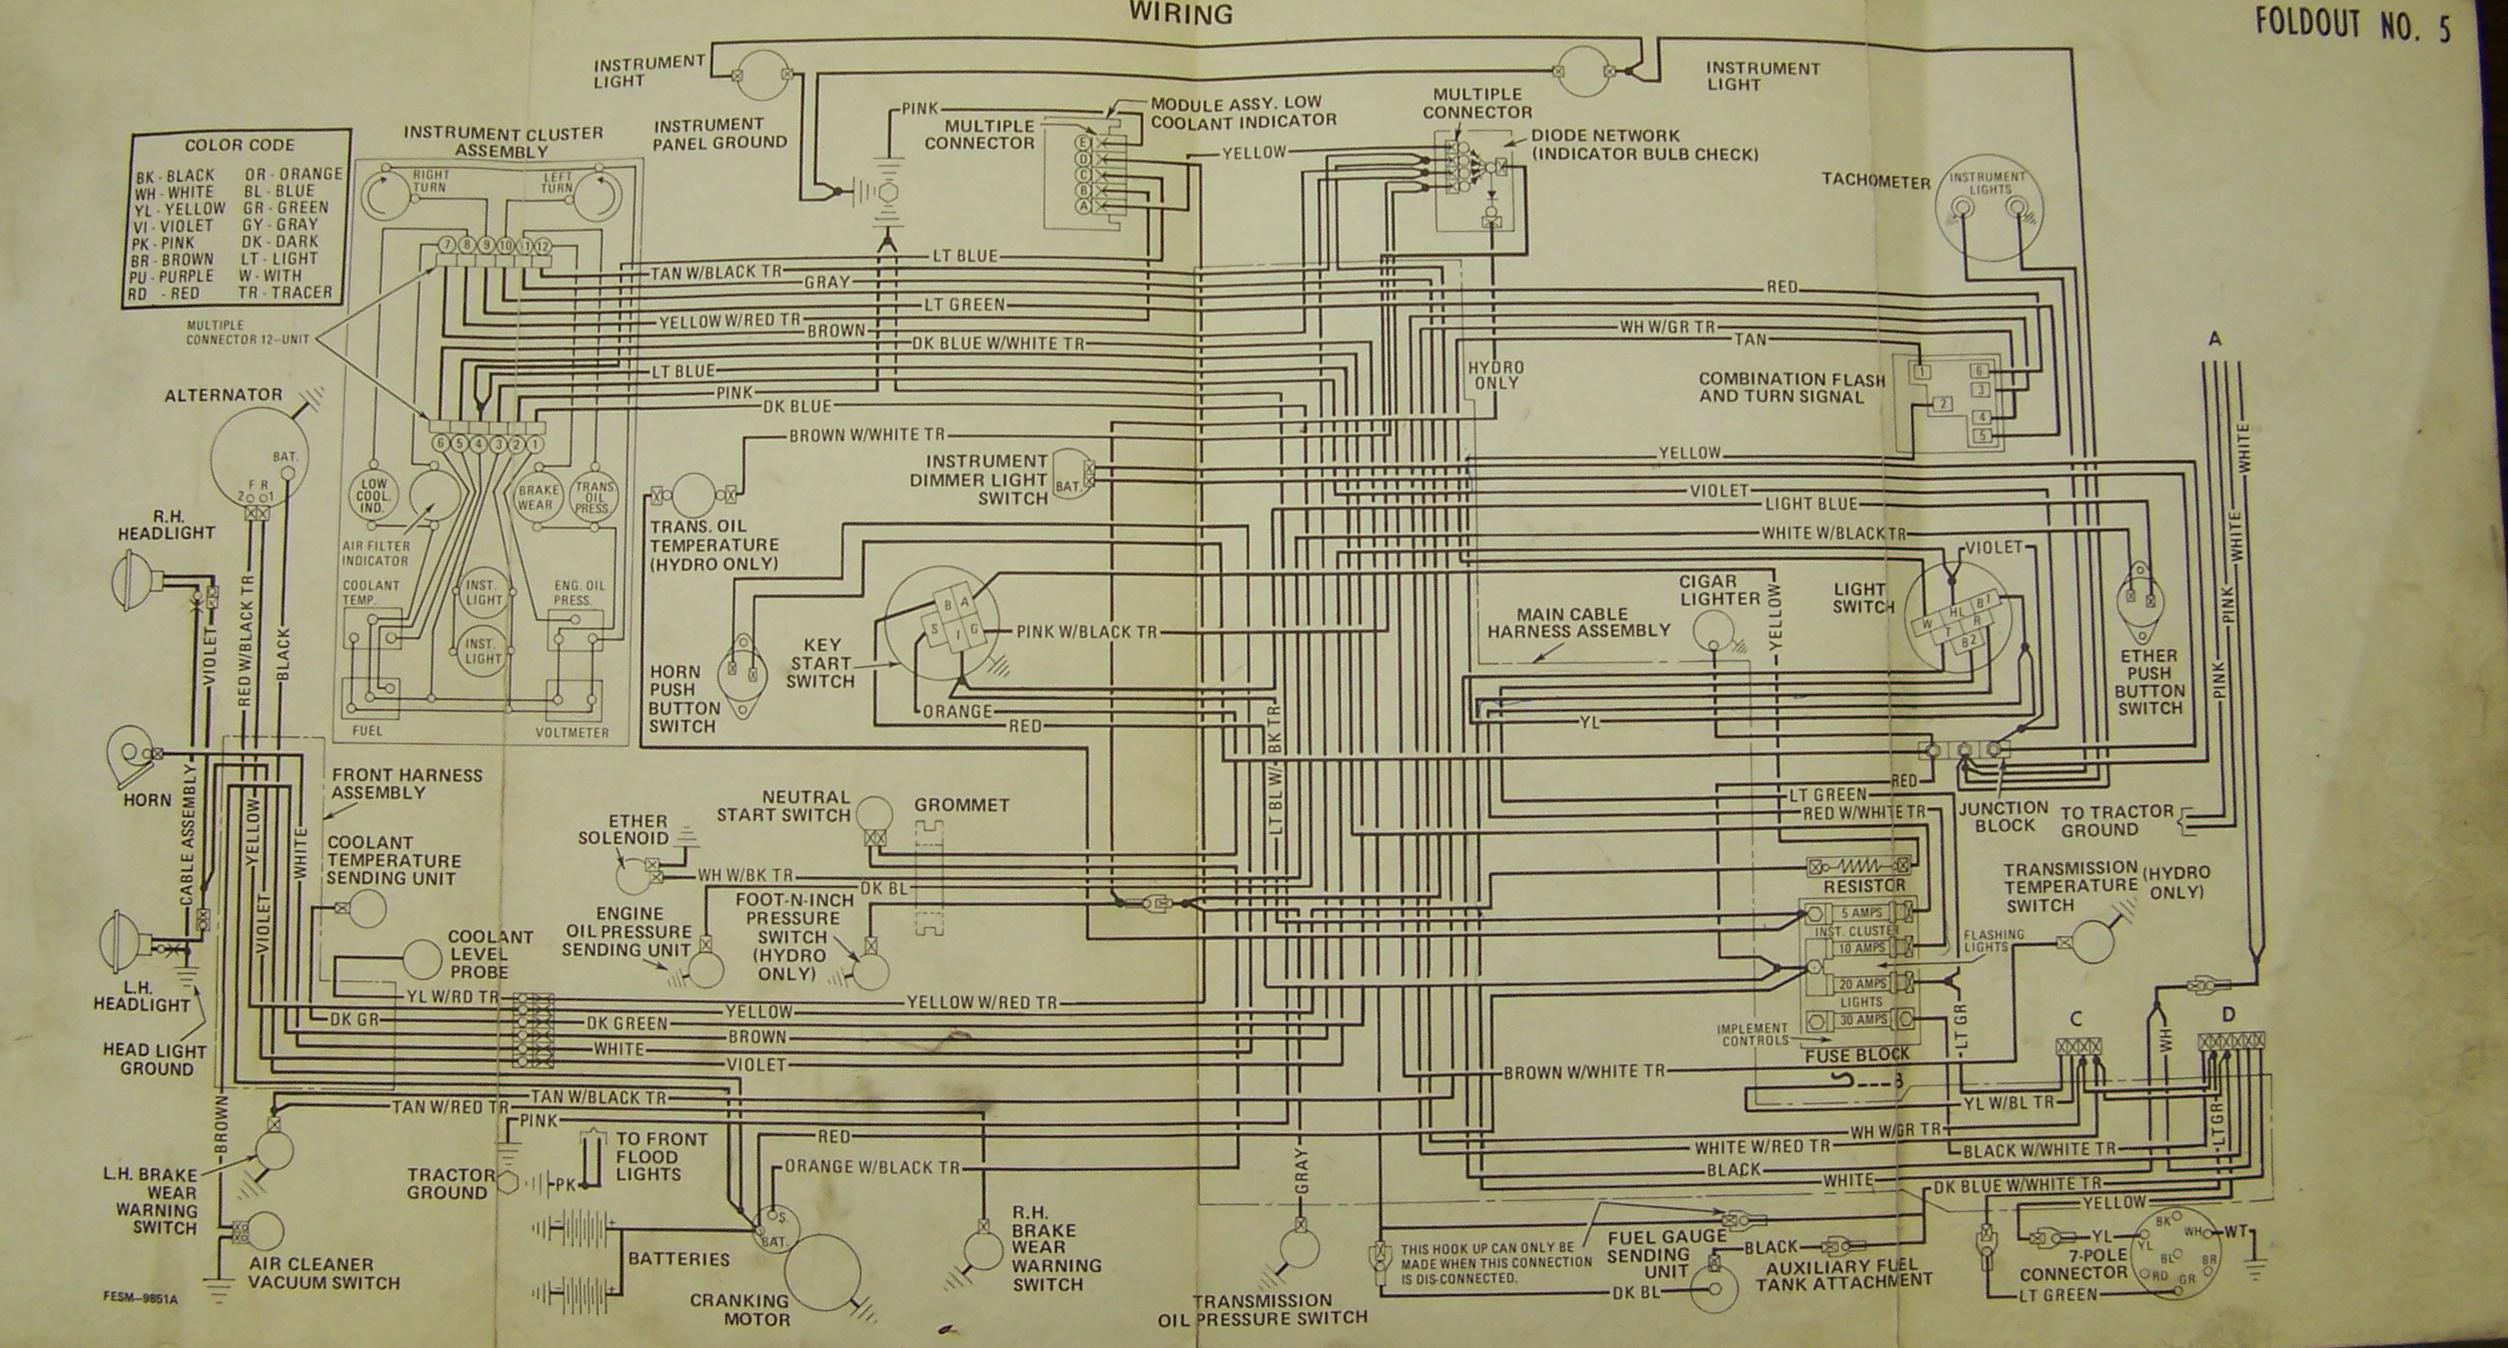 86series5 ih 574 wiring diagram case 430 tractor wiring diagram \u2022 wiring International 4300 Wiring Diagram Schematics at cita.asia